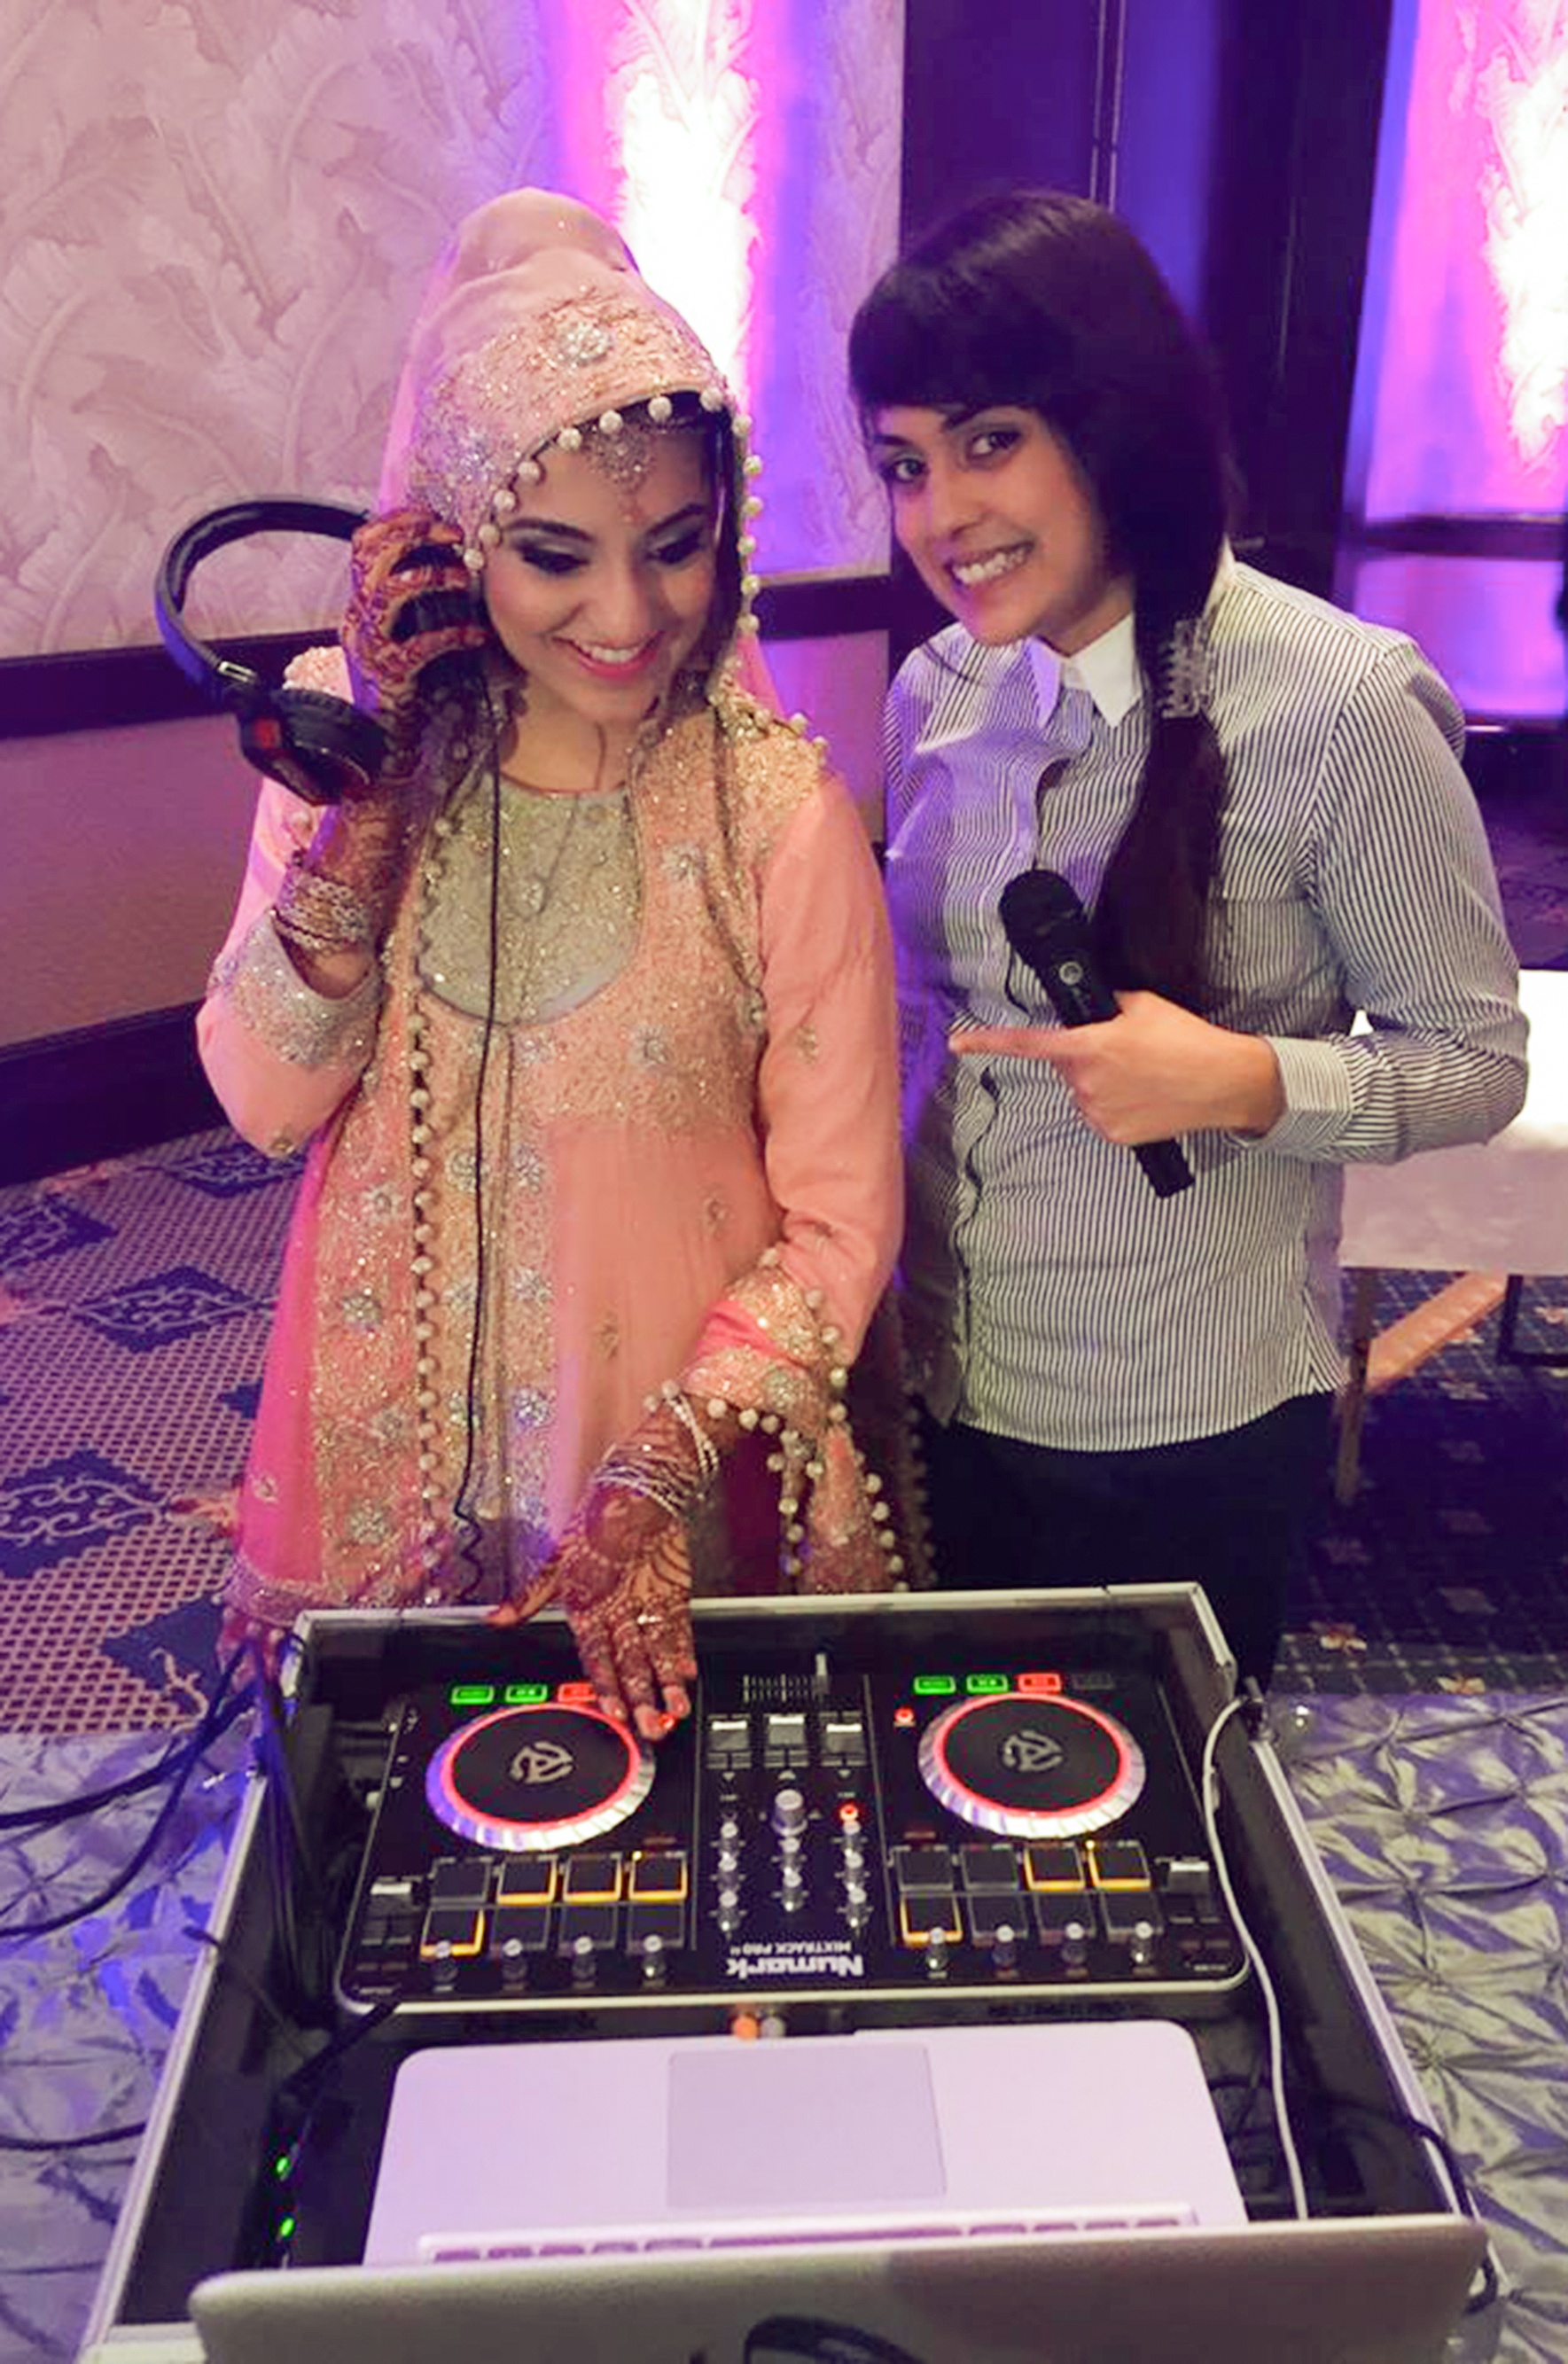 the bride and her dj ;)